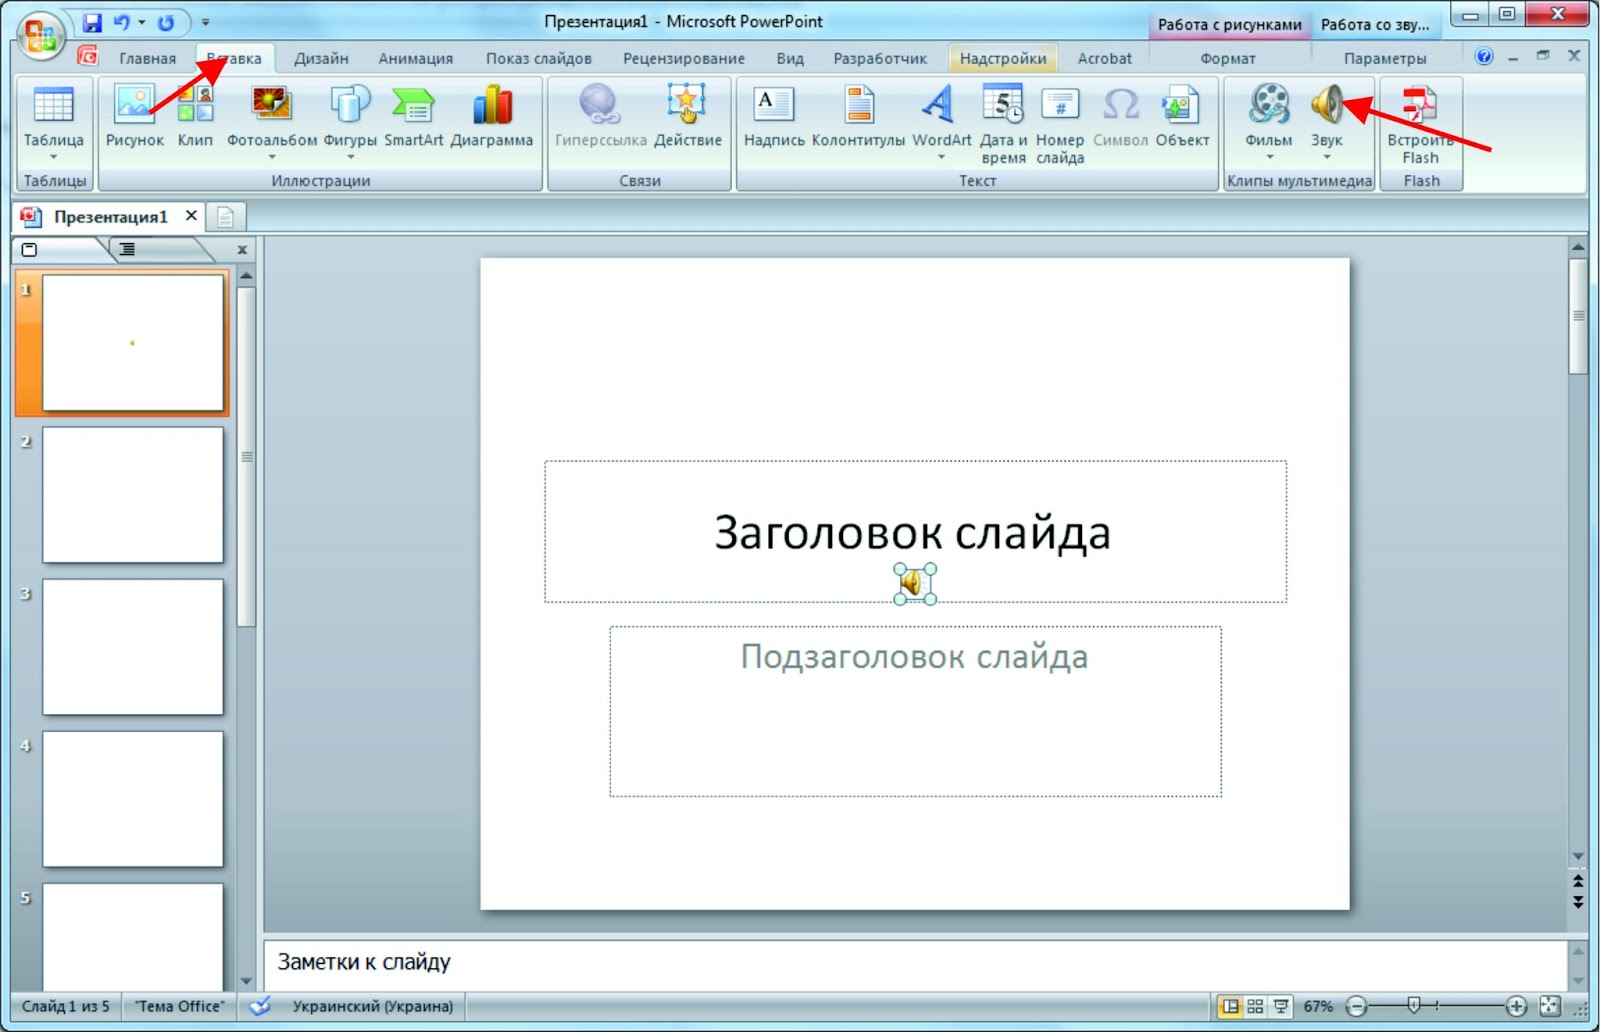 Презентация в microsoft power point